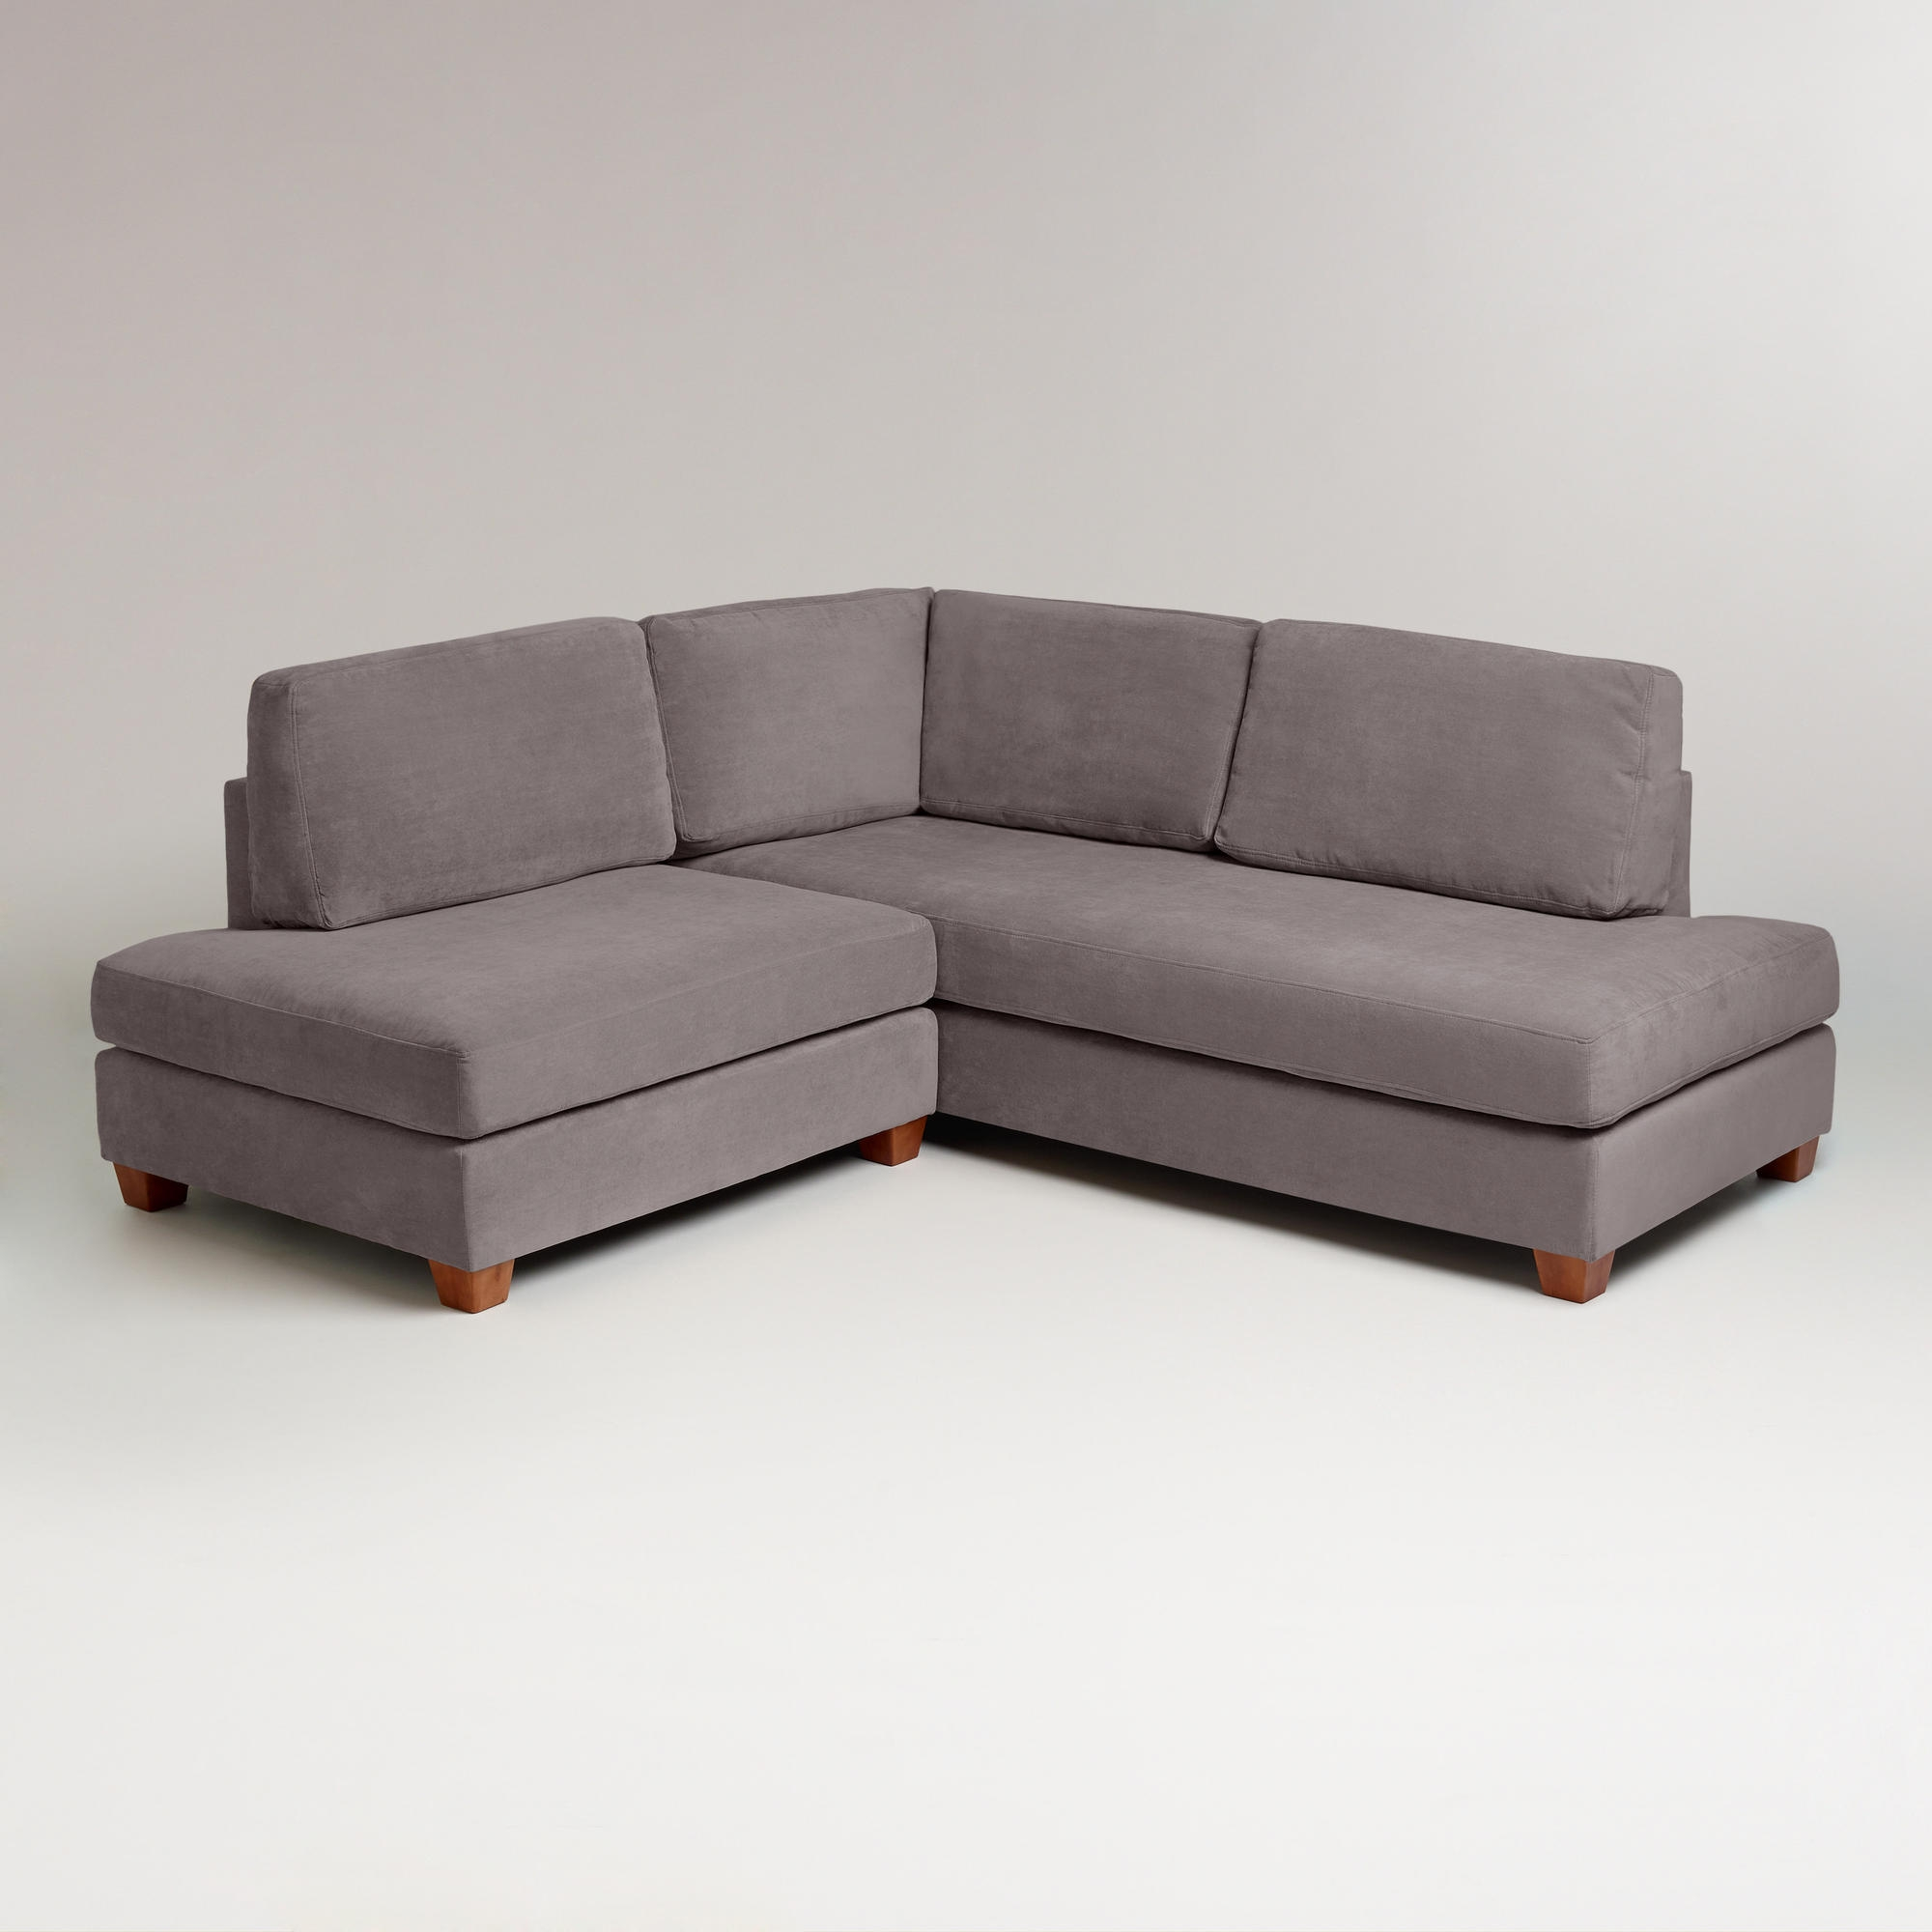 Charcoal Wyatt Sectional Sofa Sectional Sofa In Armless Sectional Sofas (Image 7 of 15)